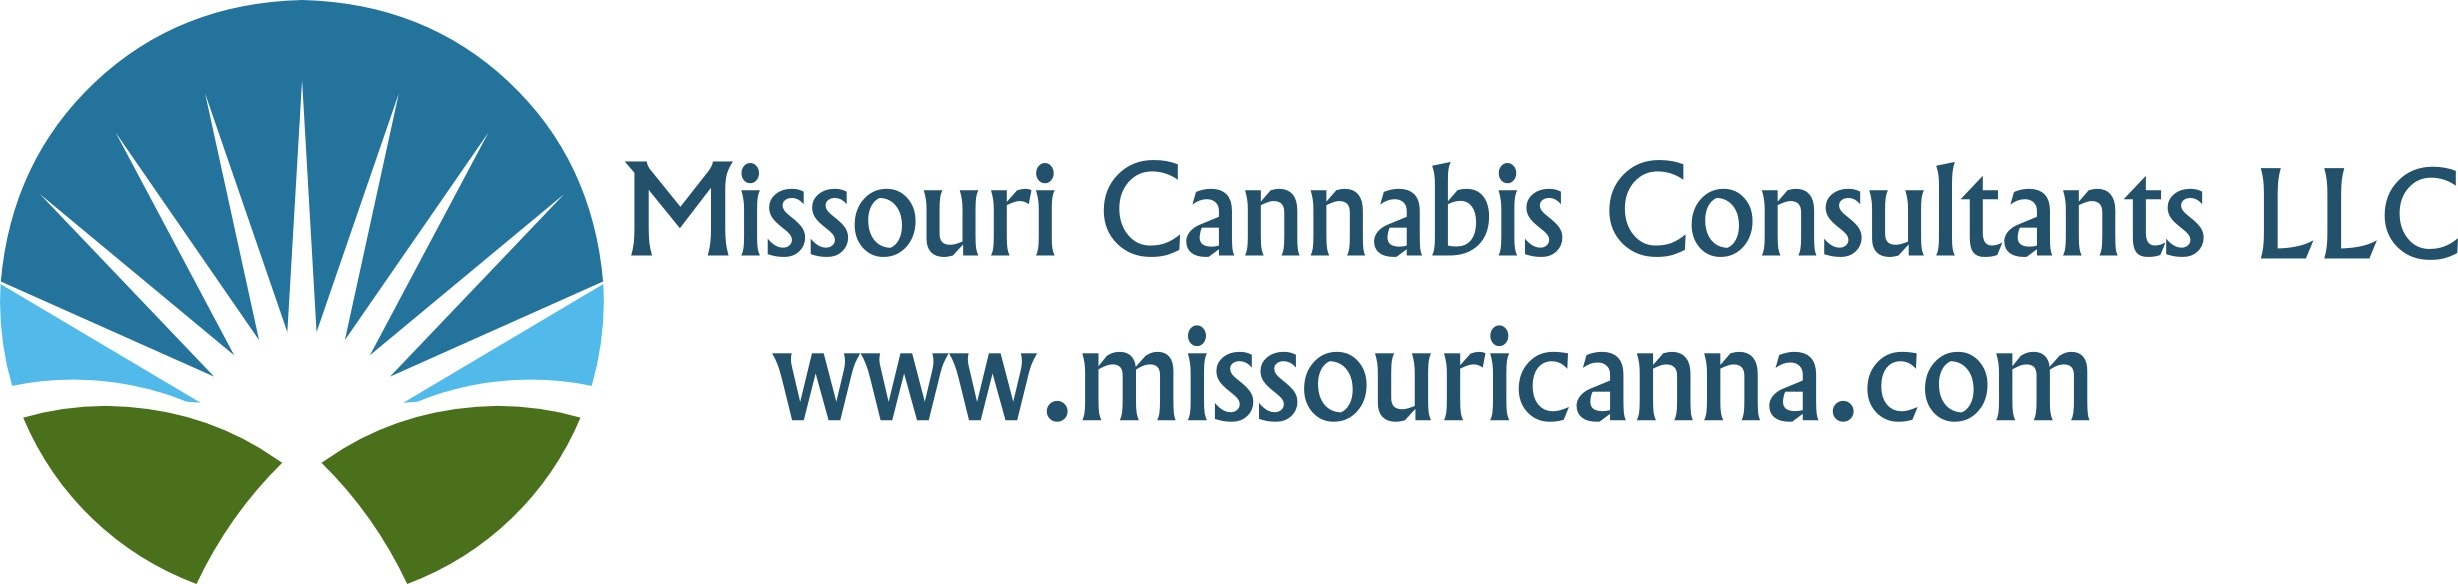 Missouri Cannabis Consulting Logo